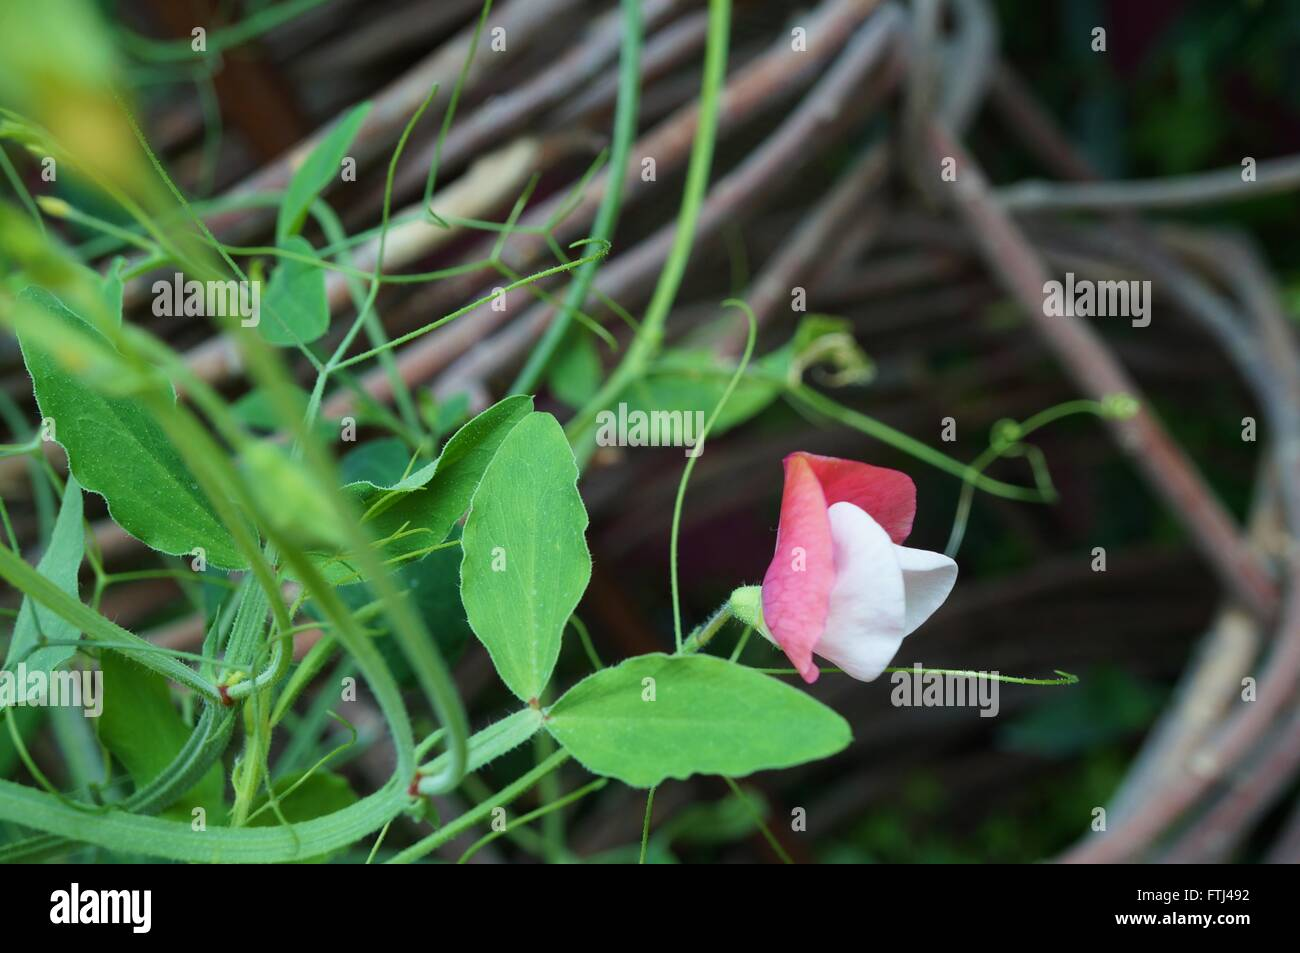 Fragrant Pink And White Sweet Pea Flowers Climbing On The Vine Stock